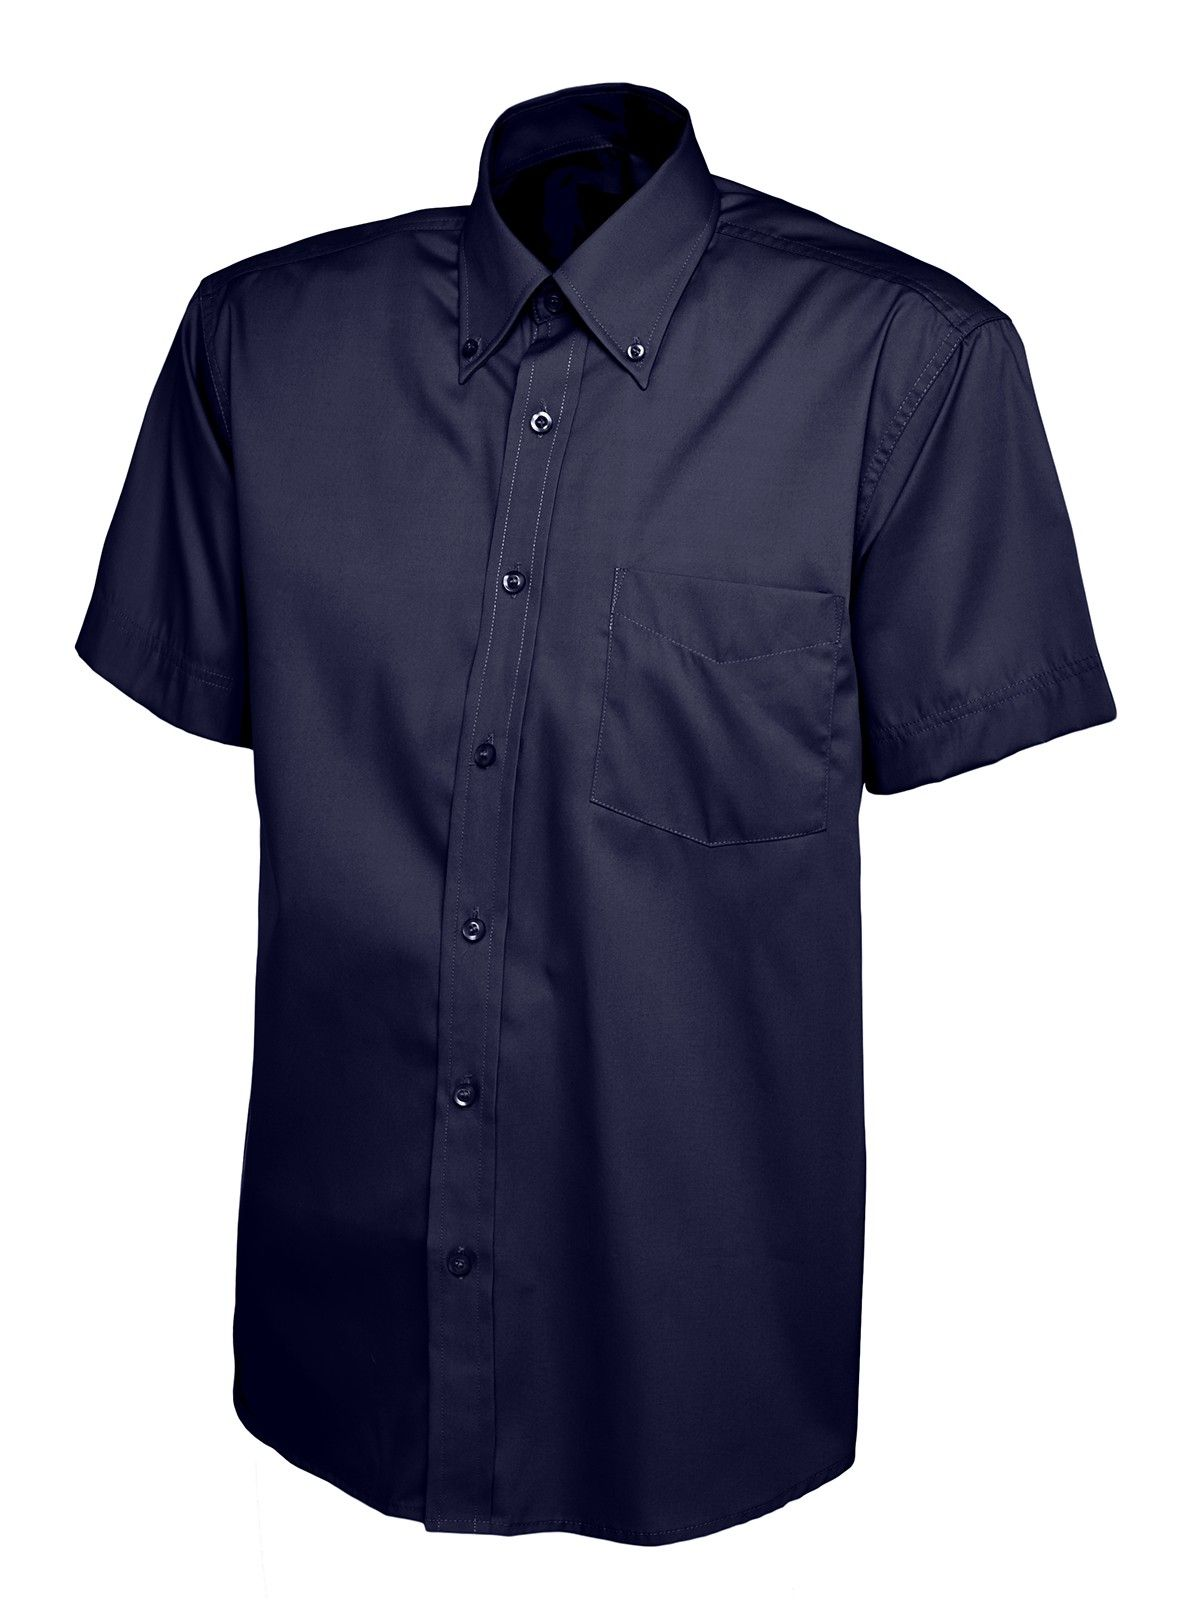 Black Oxford Shirt Mens